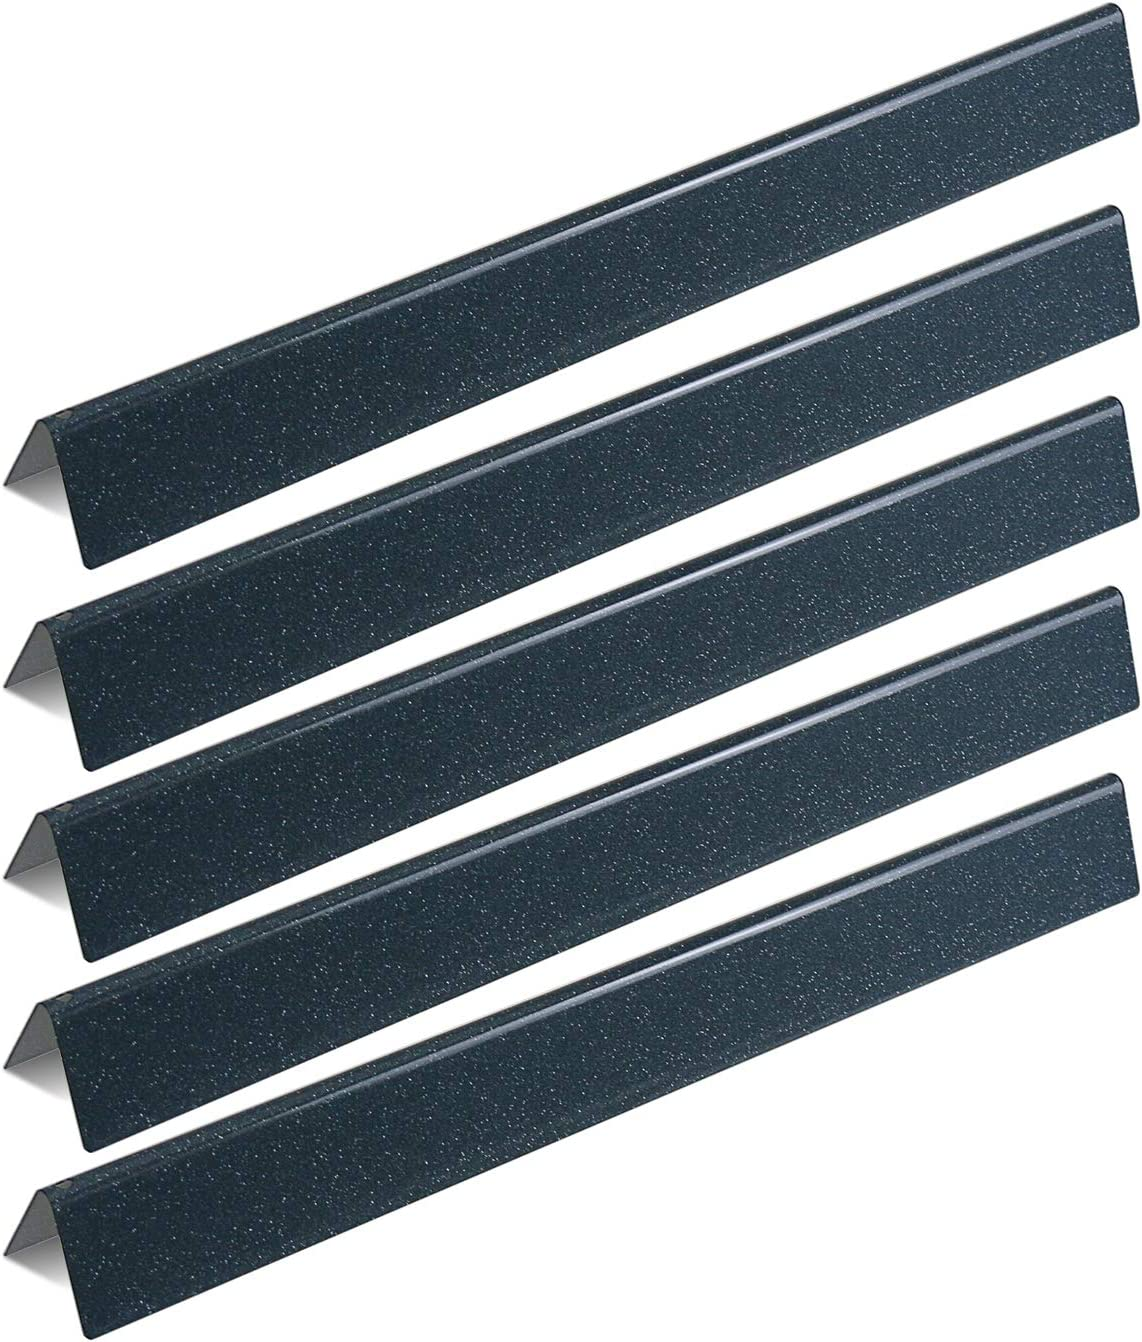 Utheer 7540 7539 Flavorizer Bars 24.5 Inches for Weber Genesis 300 Series E-310 E-320 S-310 S-320 EP-310 EP-320 CEP-310 CEP-320 (with Side Control), Replaces Weber 65935, Porcelain Enameled Steel